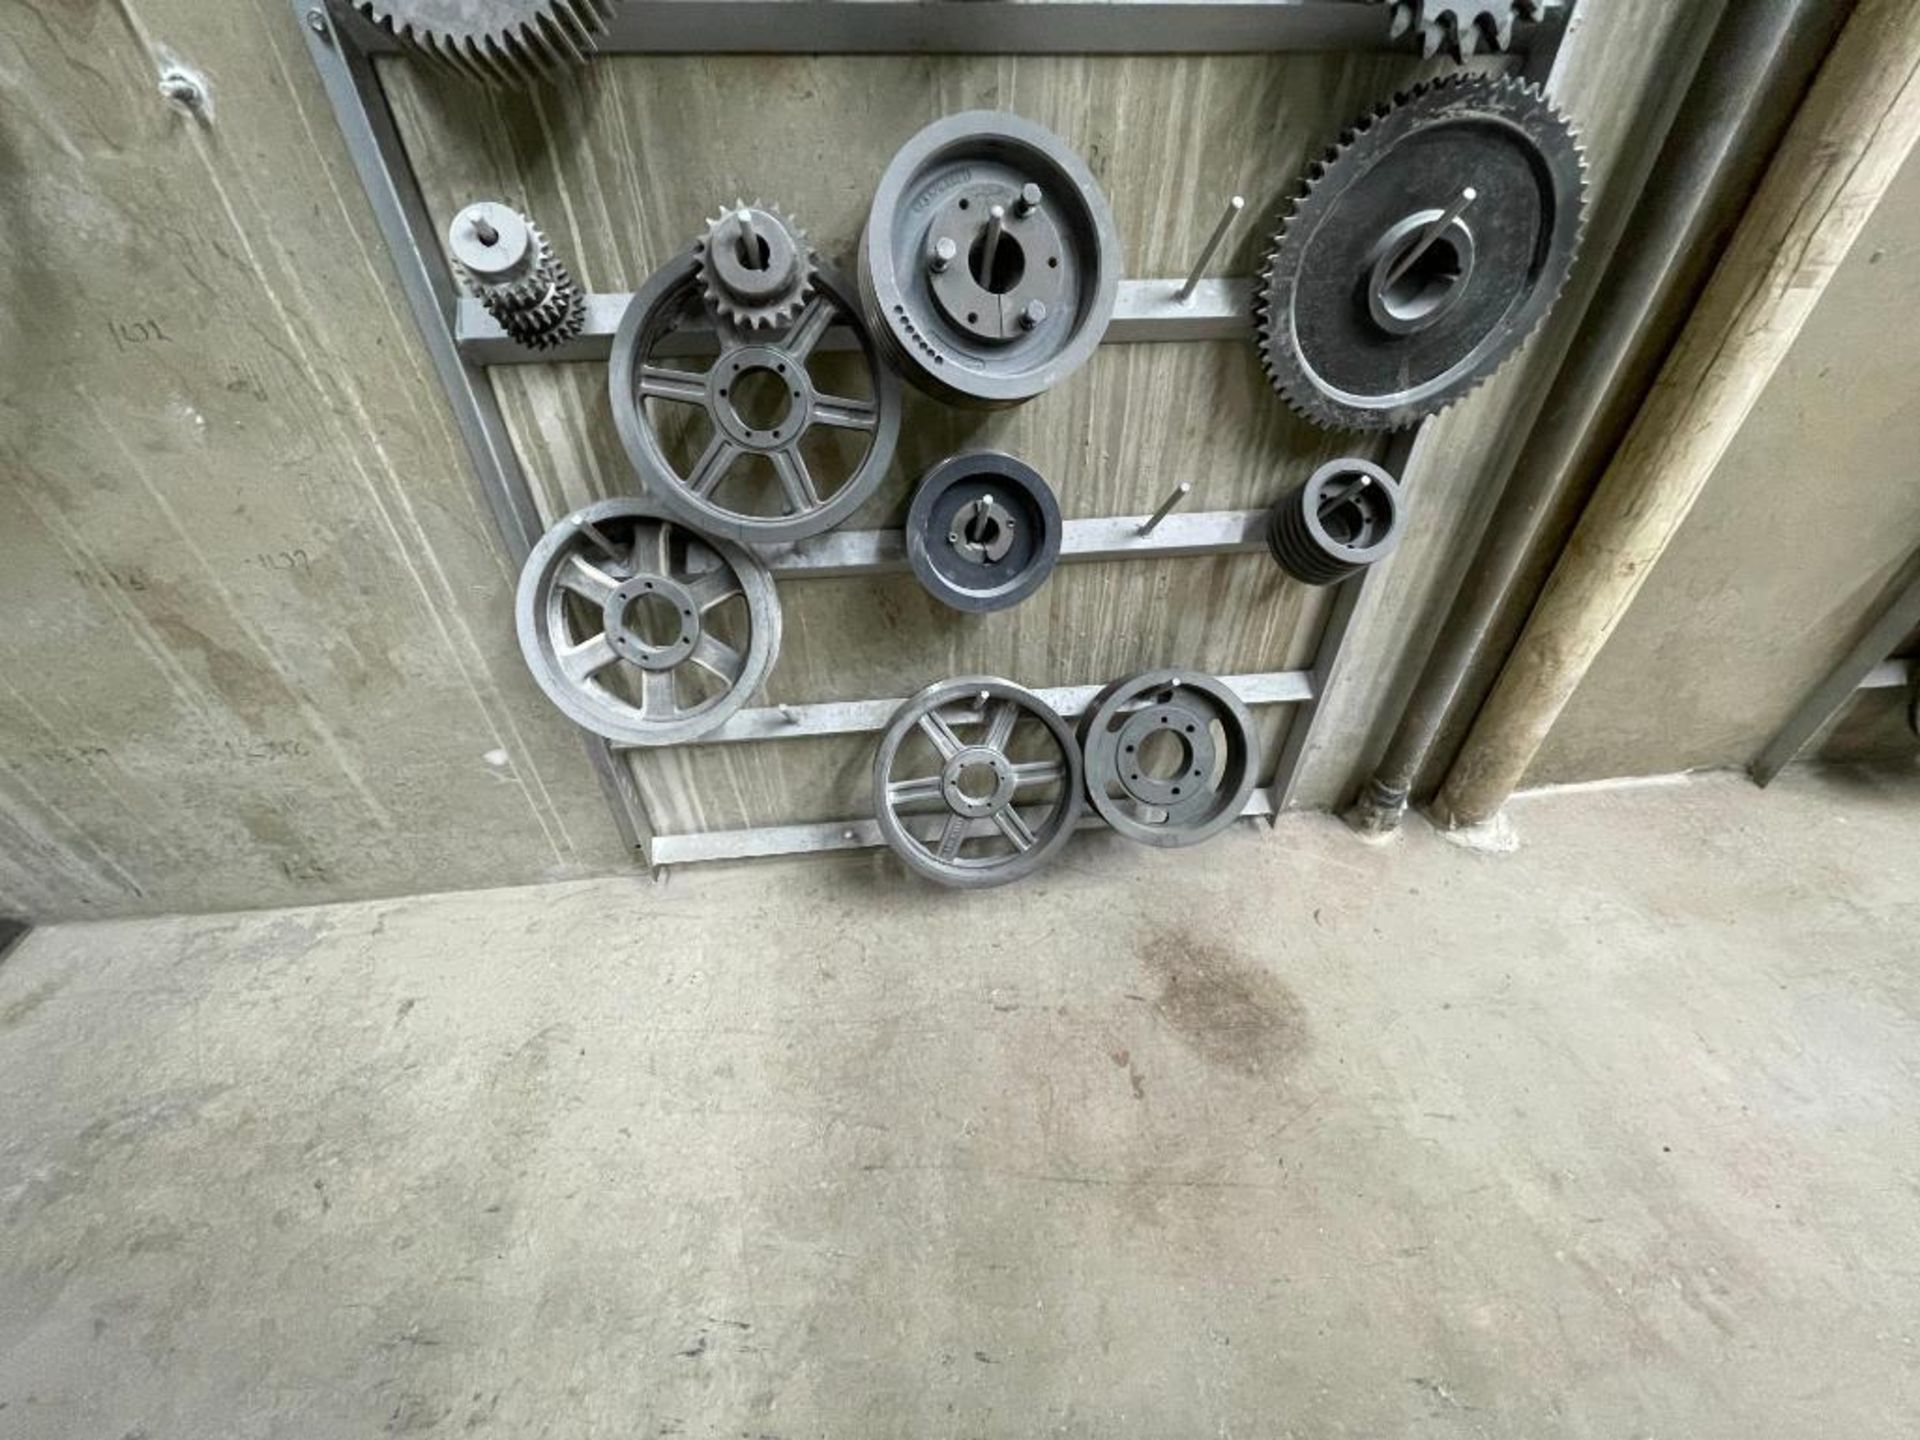 gears and pulleys - Image 14 of 17